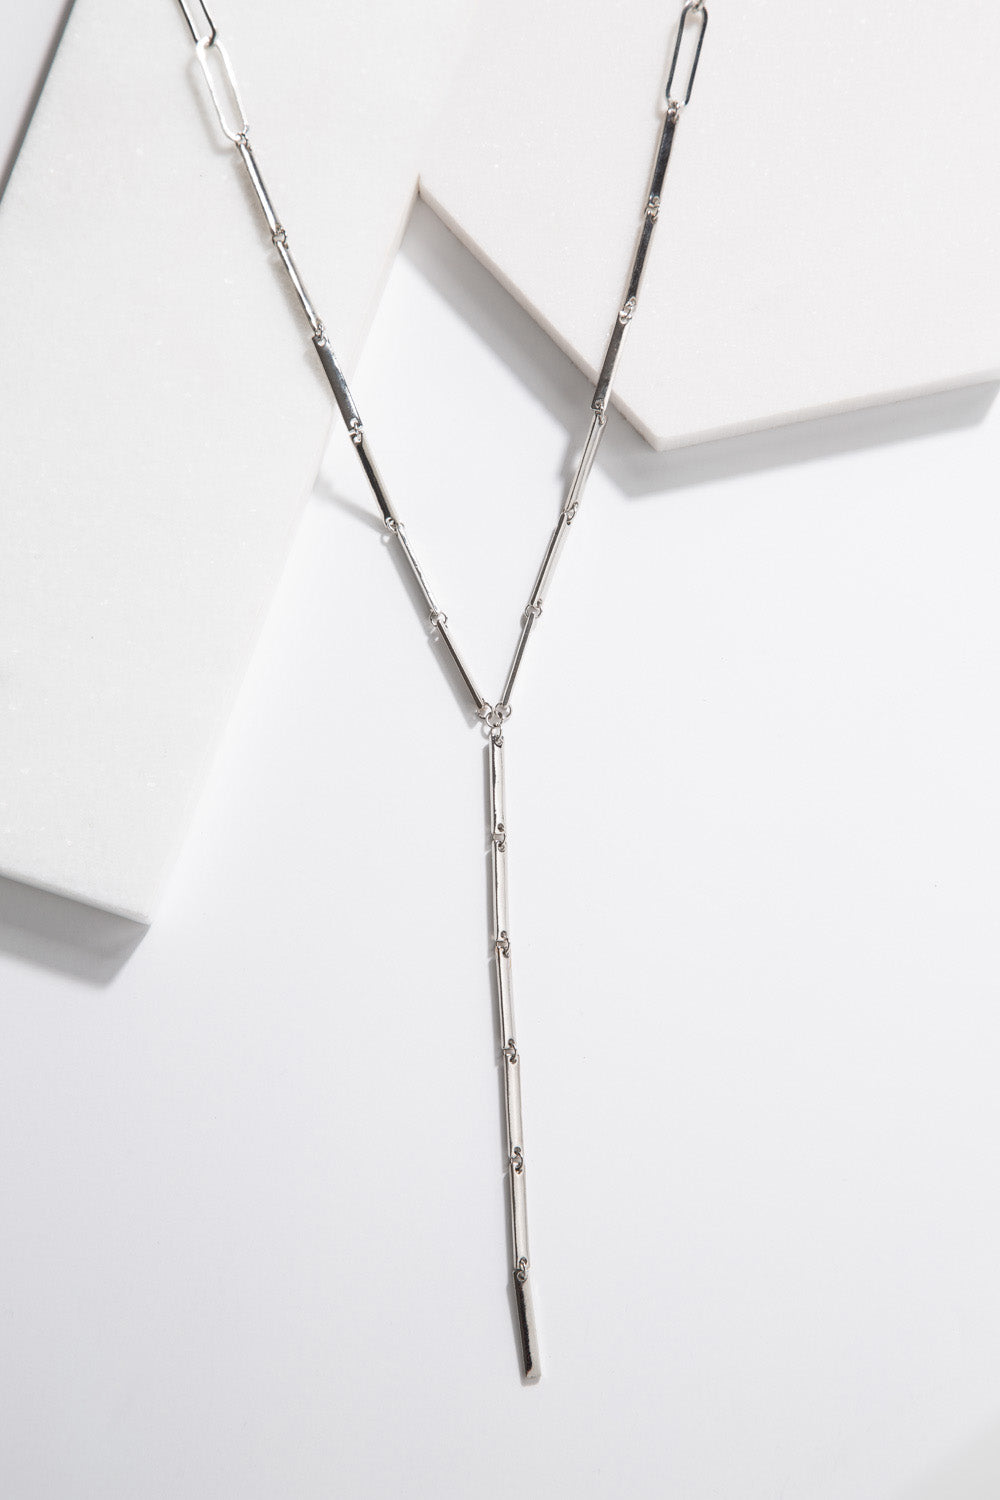 Type 4 Refined Reflections Necklace